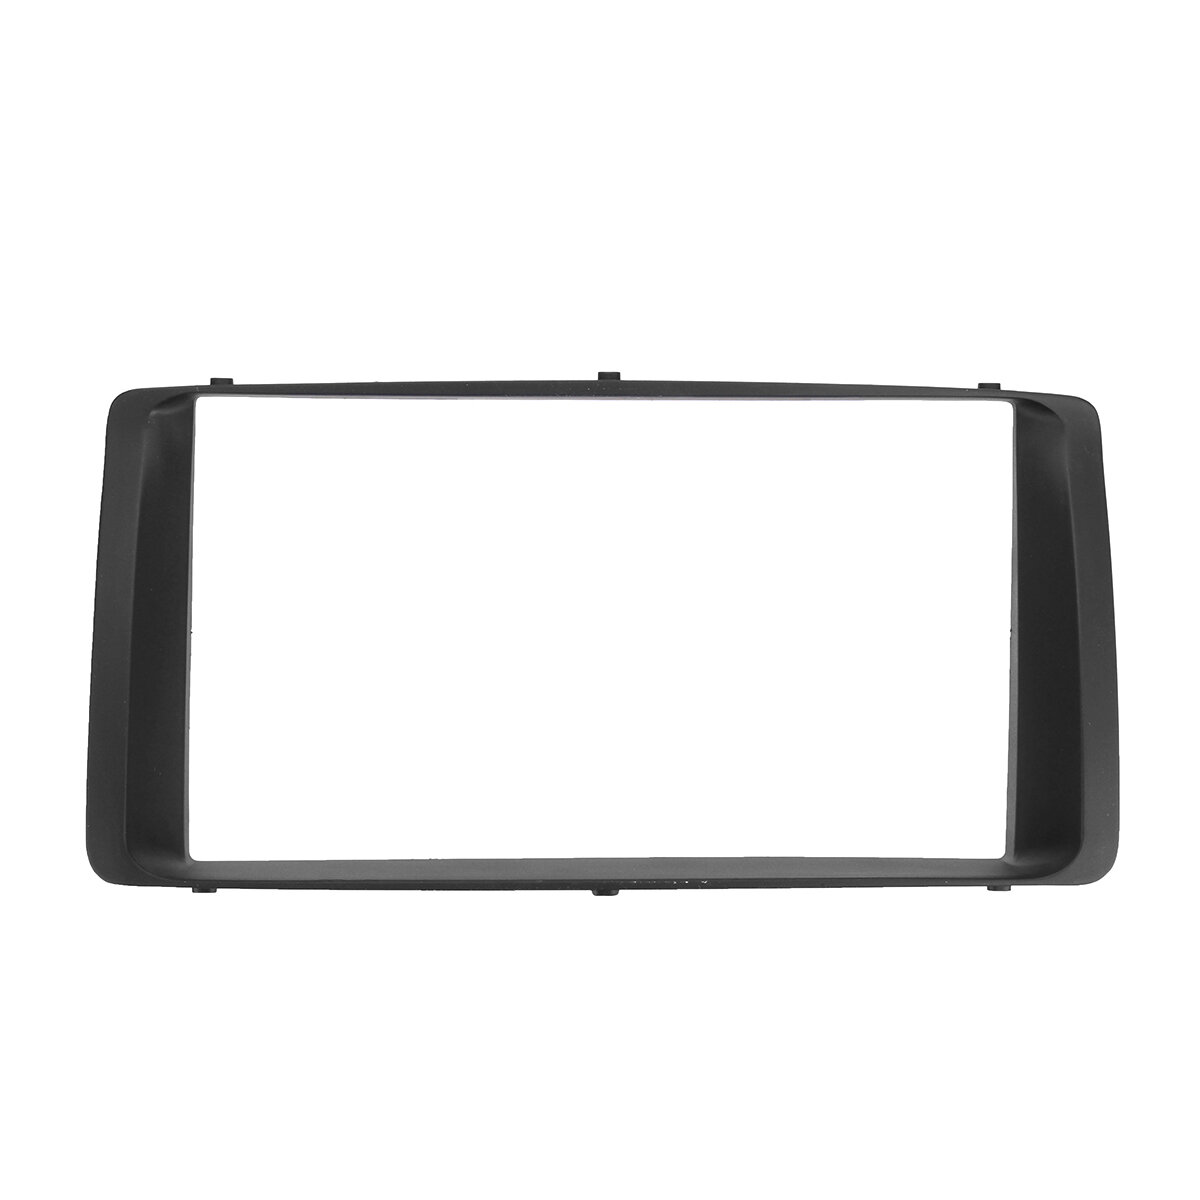 2 Pin Car Stereo Panel Frame For Toyota Corolla 2003-2006